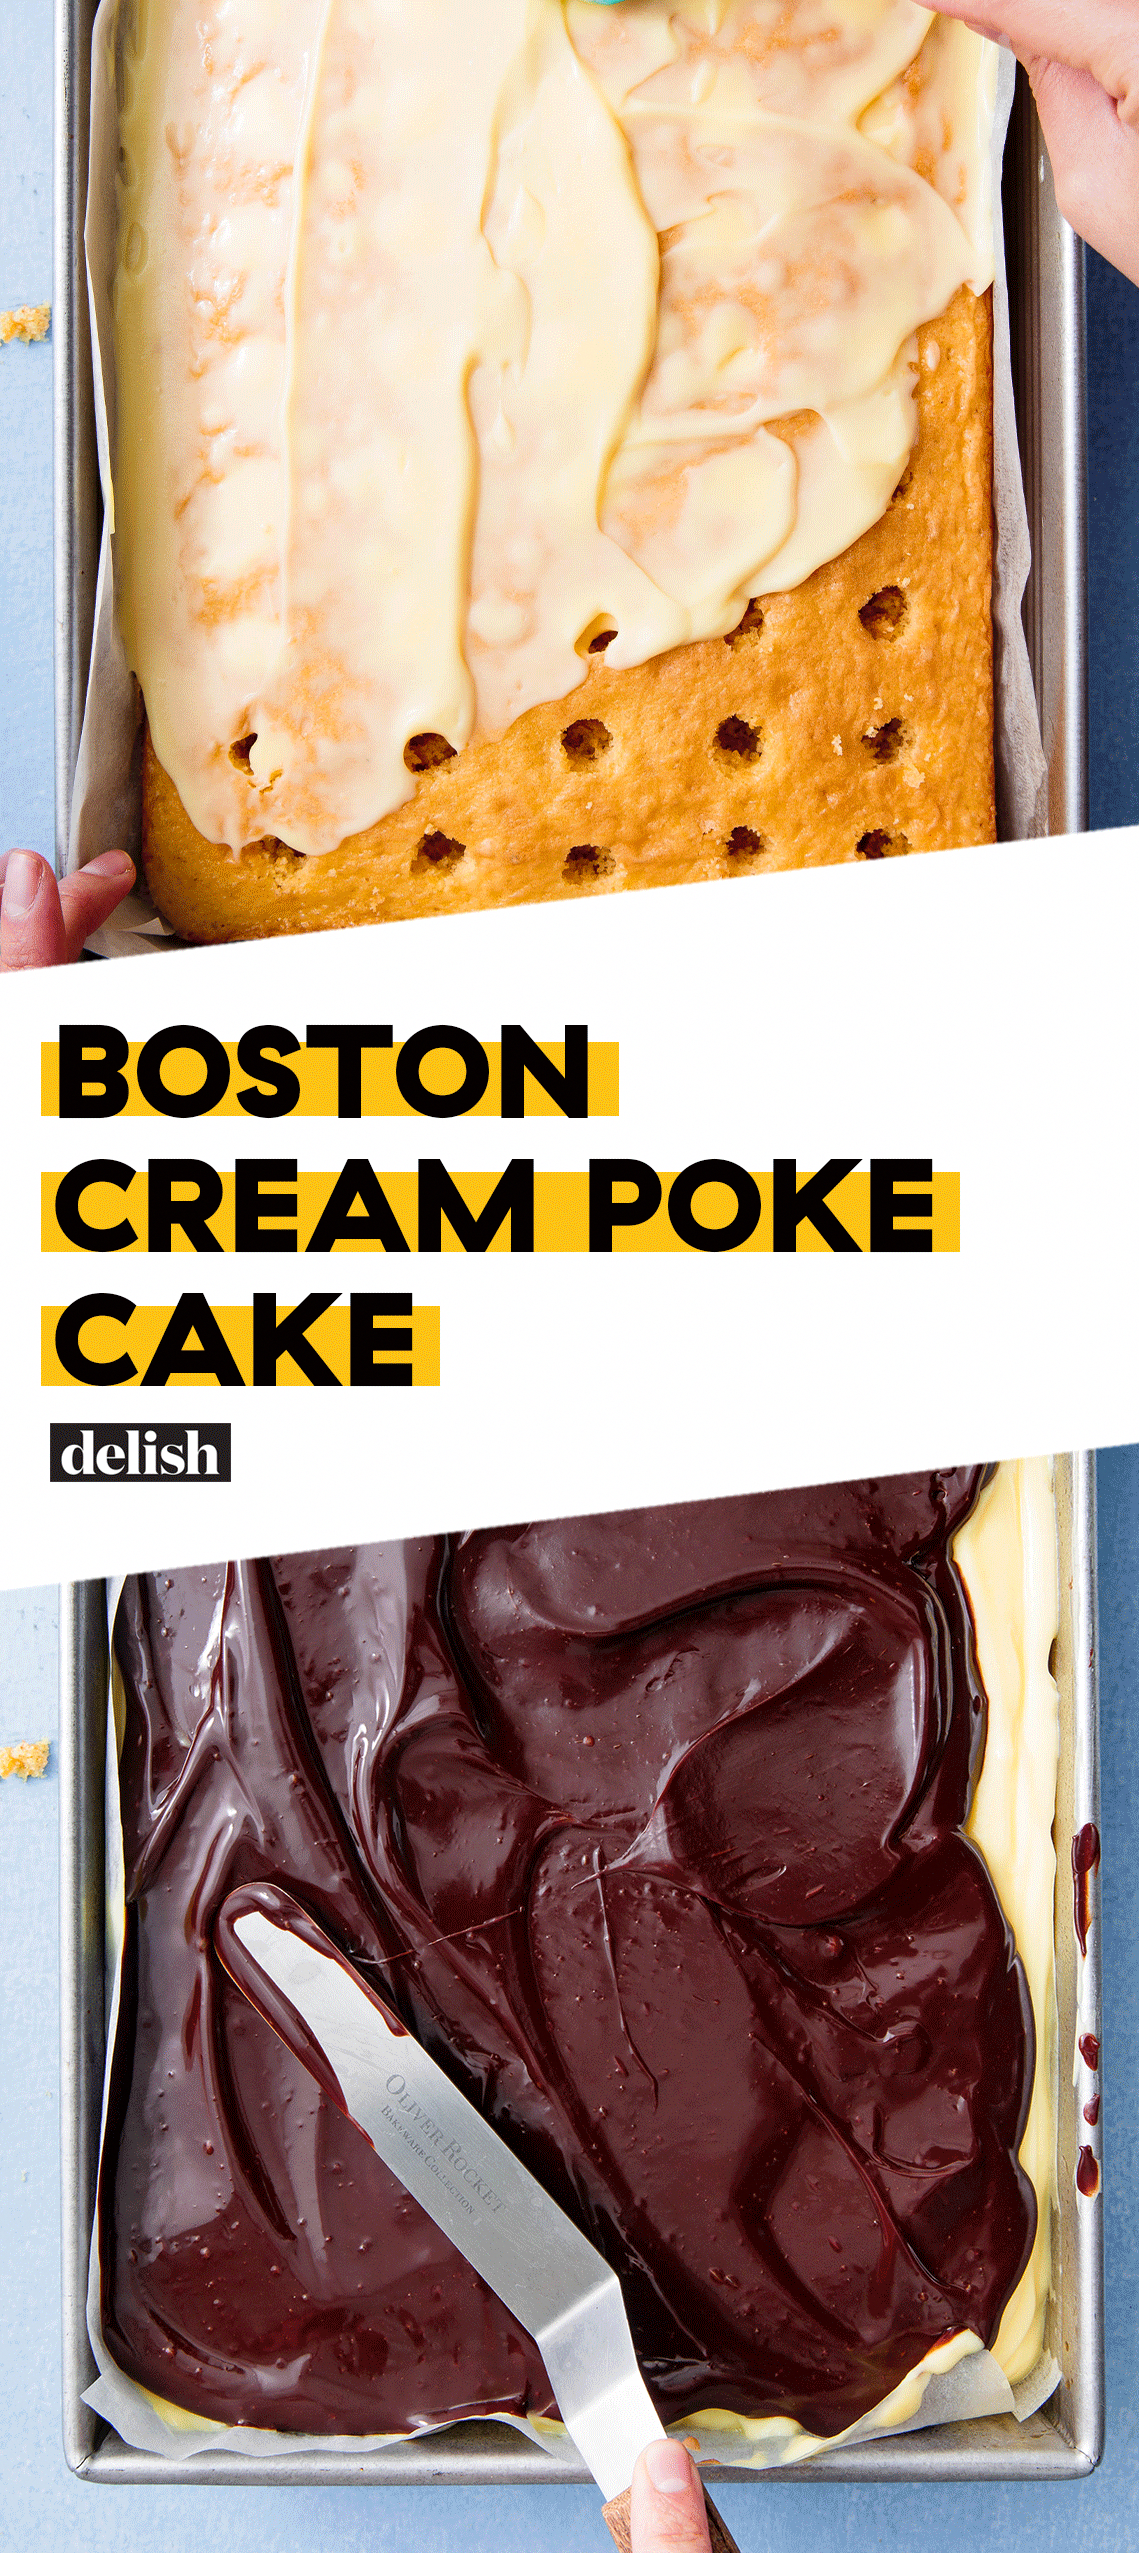 Boston Cream Poke Cake Will Make You An Instant Pudding Believer